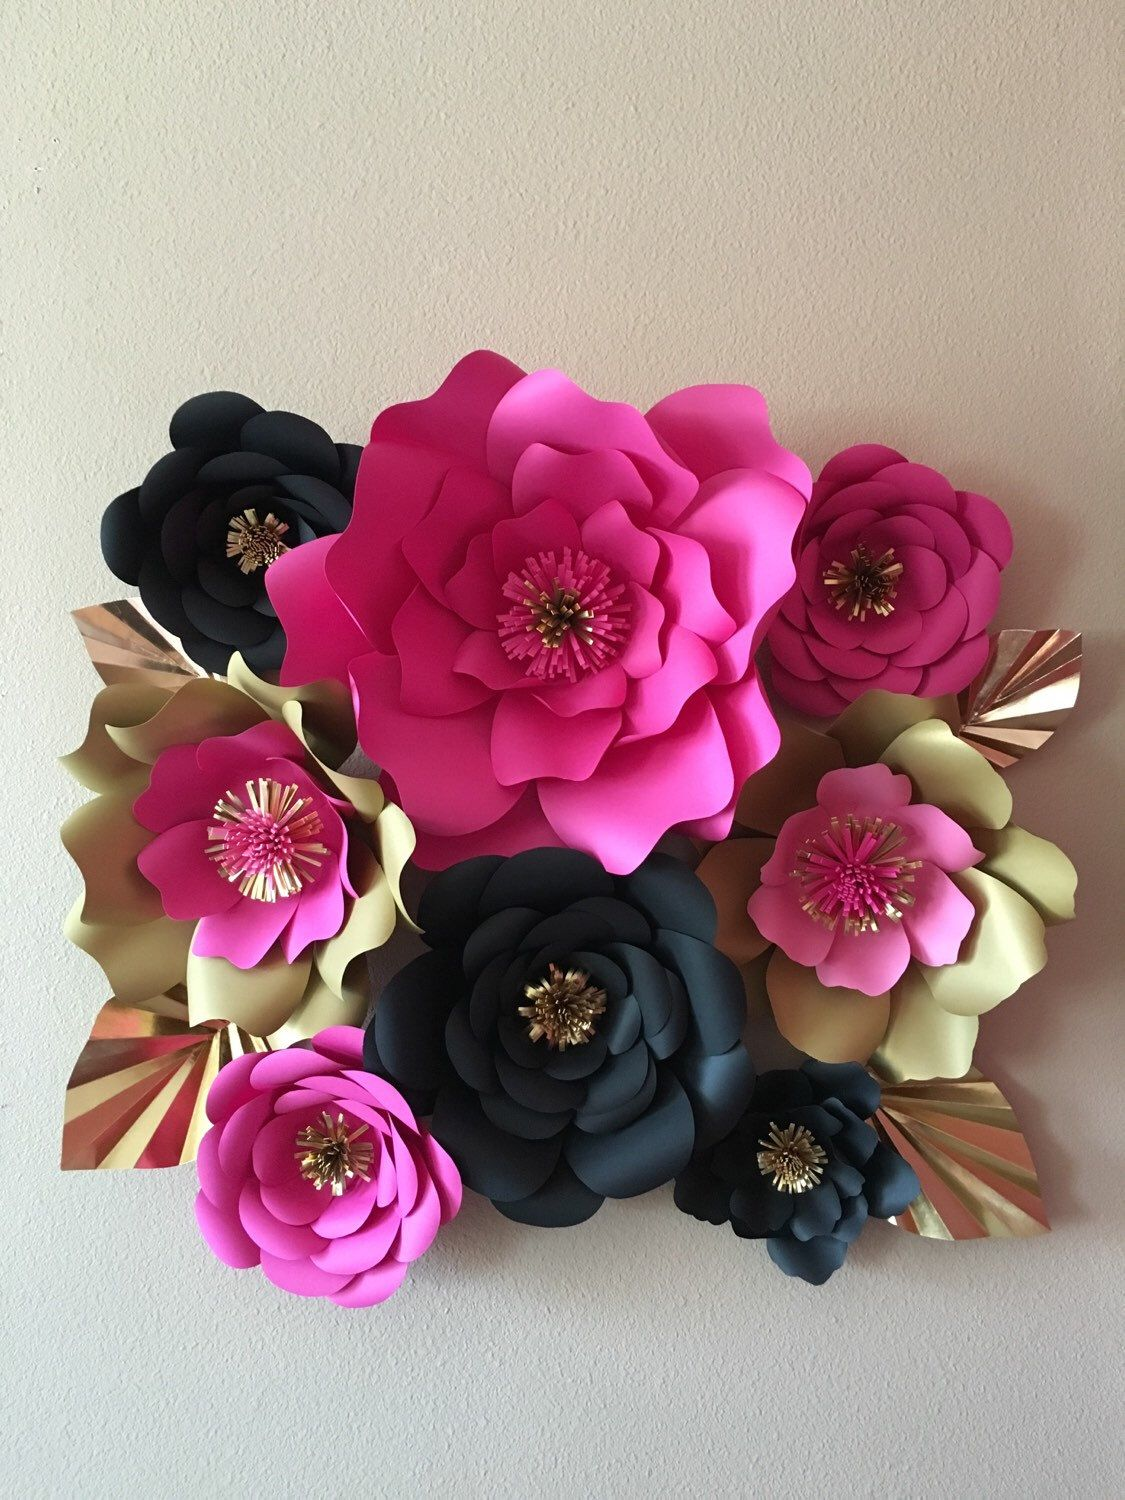 9 Kate Spade Inspired Giant Paper Flowers Decor Pink Gold Black